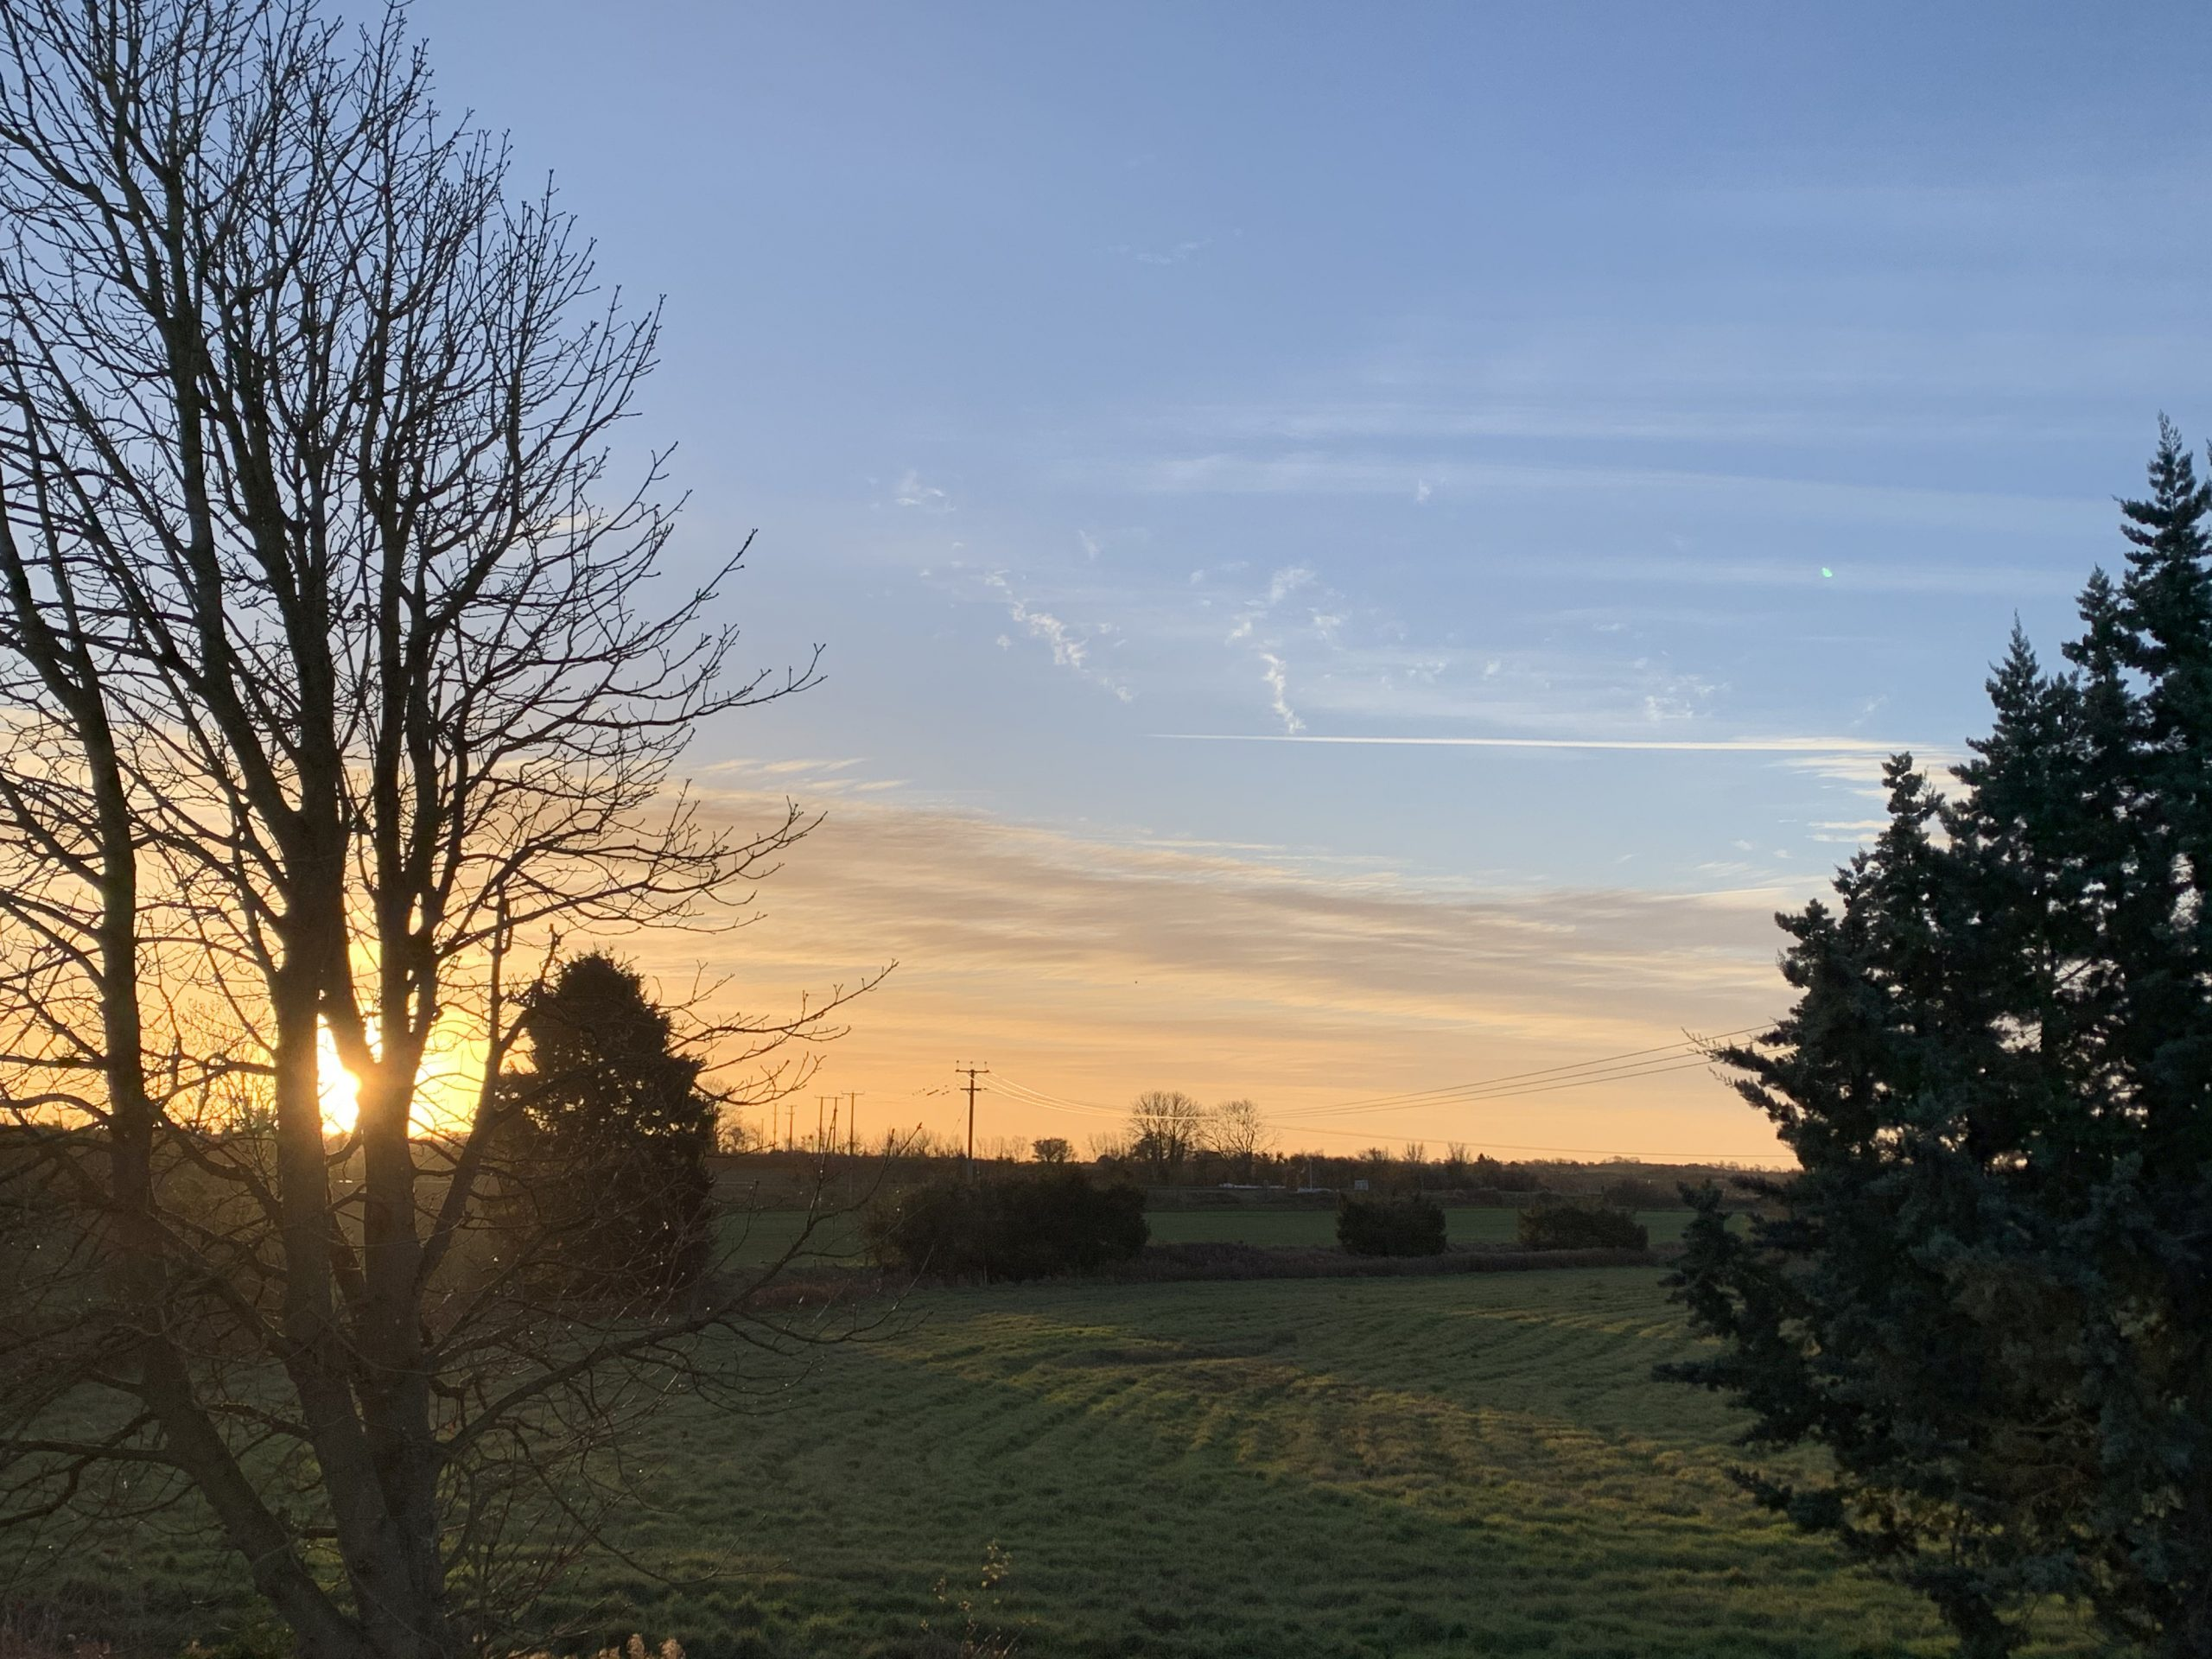 A view over fields at sunrise - inspiration for Rosie's Sky Blanket 2021